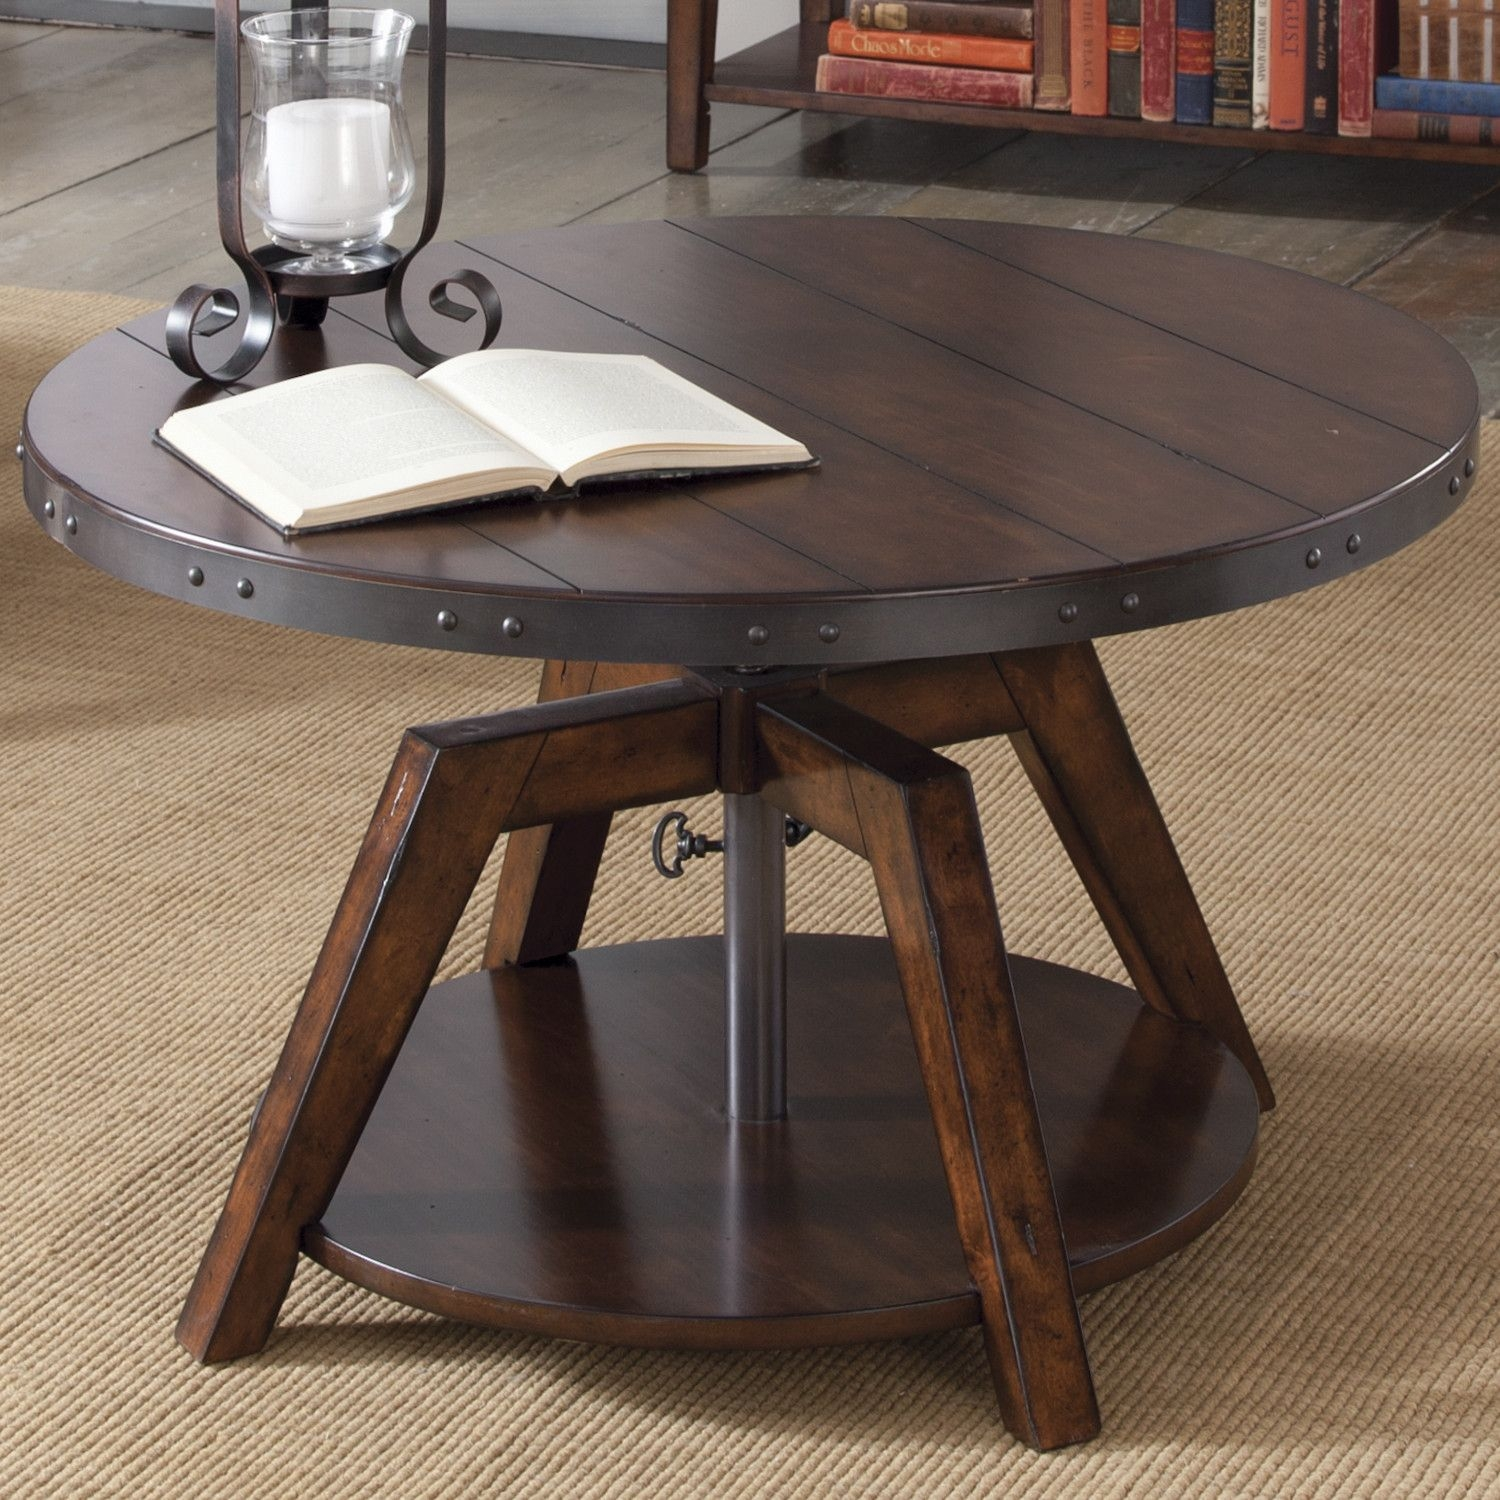 50+ Amazing Convertible Coffee Table To Dining Table